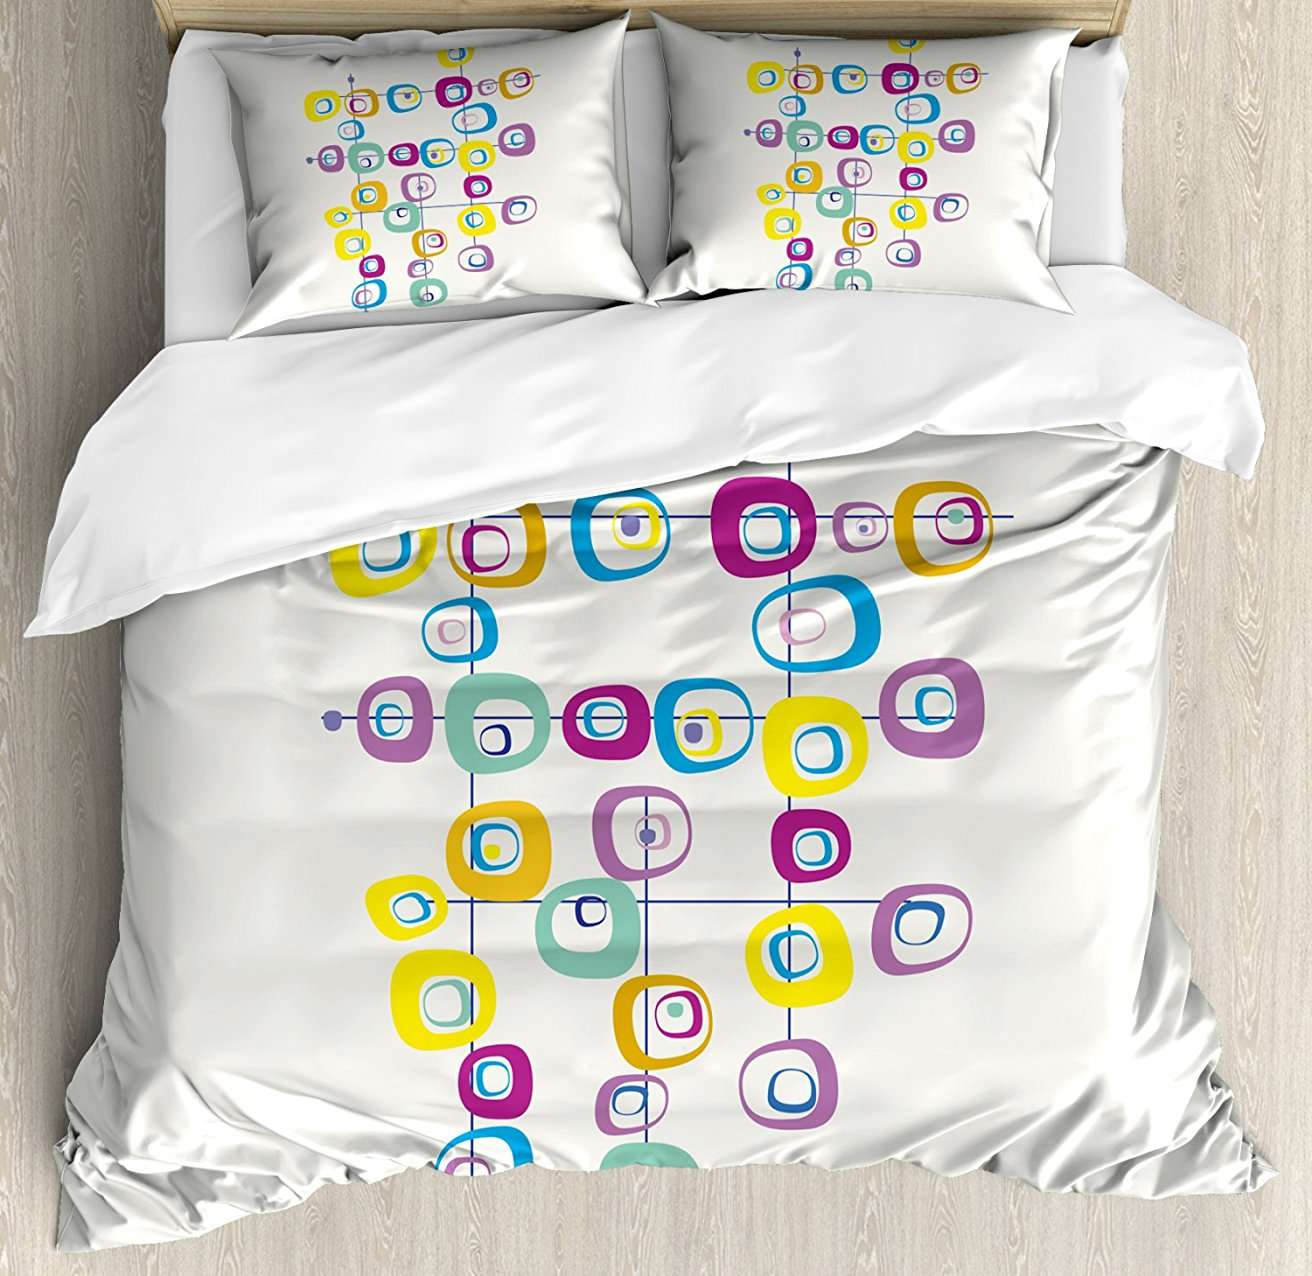 Mid Century Duvet Cover Set Hippie Artistic Squares on Intersecting Lines Colored Cool and Crazy Themed Art 4 Piece Bedding Set